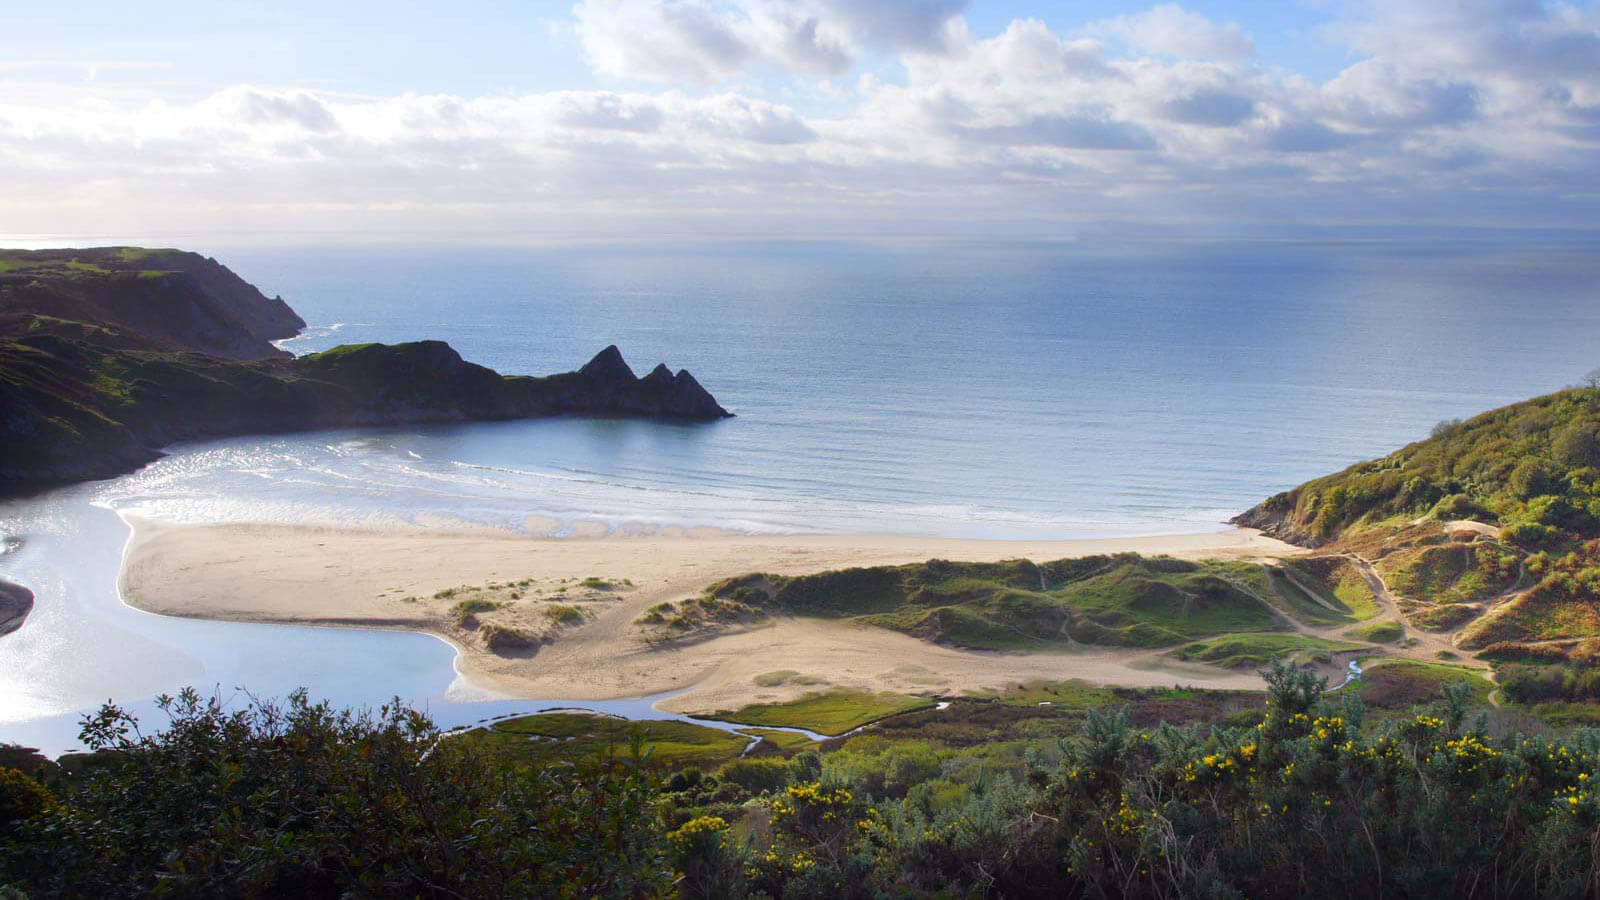 Gower Three Cliffs Bay